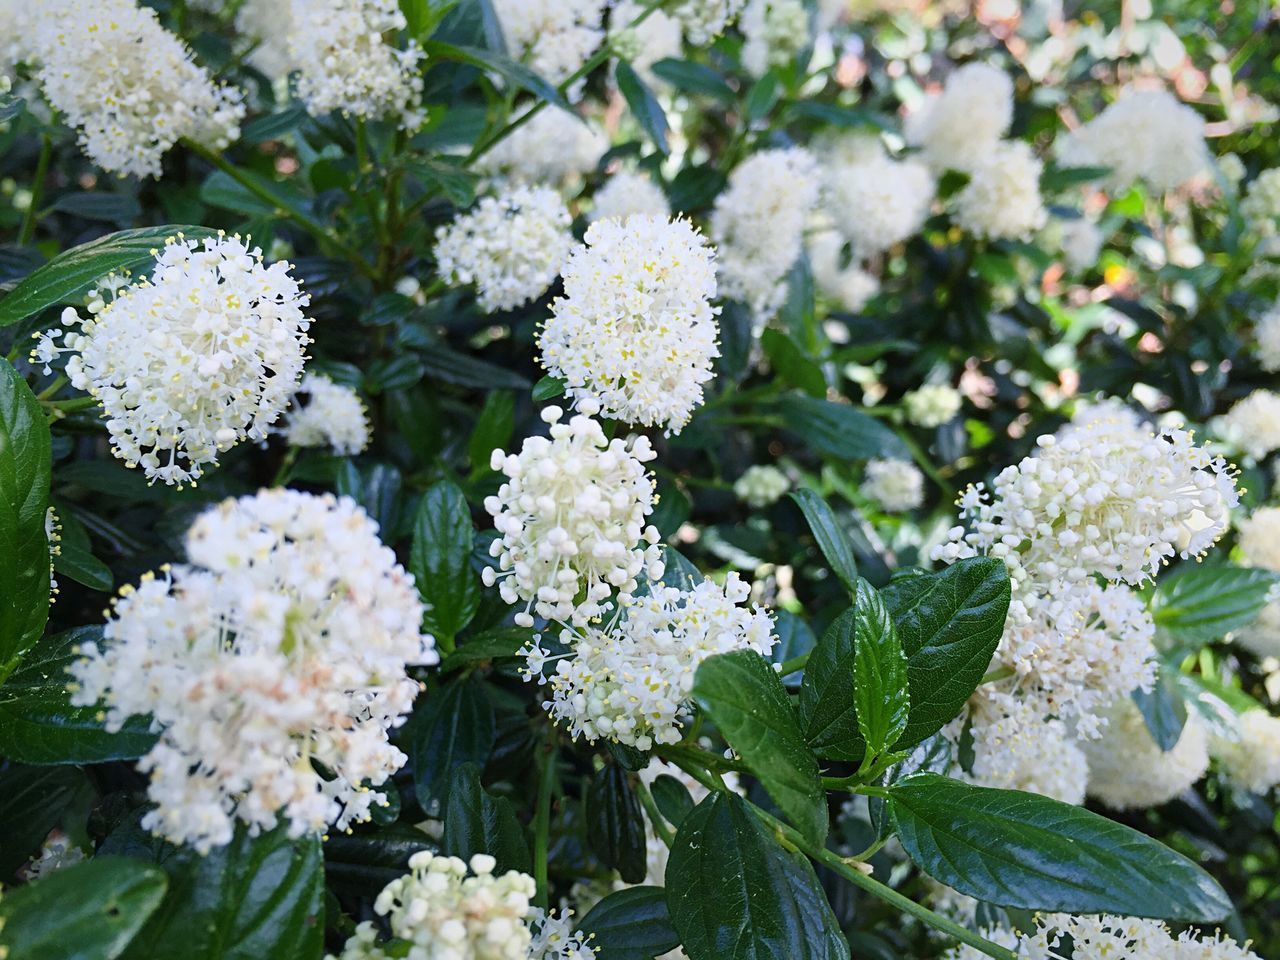 Ceanothus White Ceanothus Alba California Native Winter Blooms Open Edit Shrubs